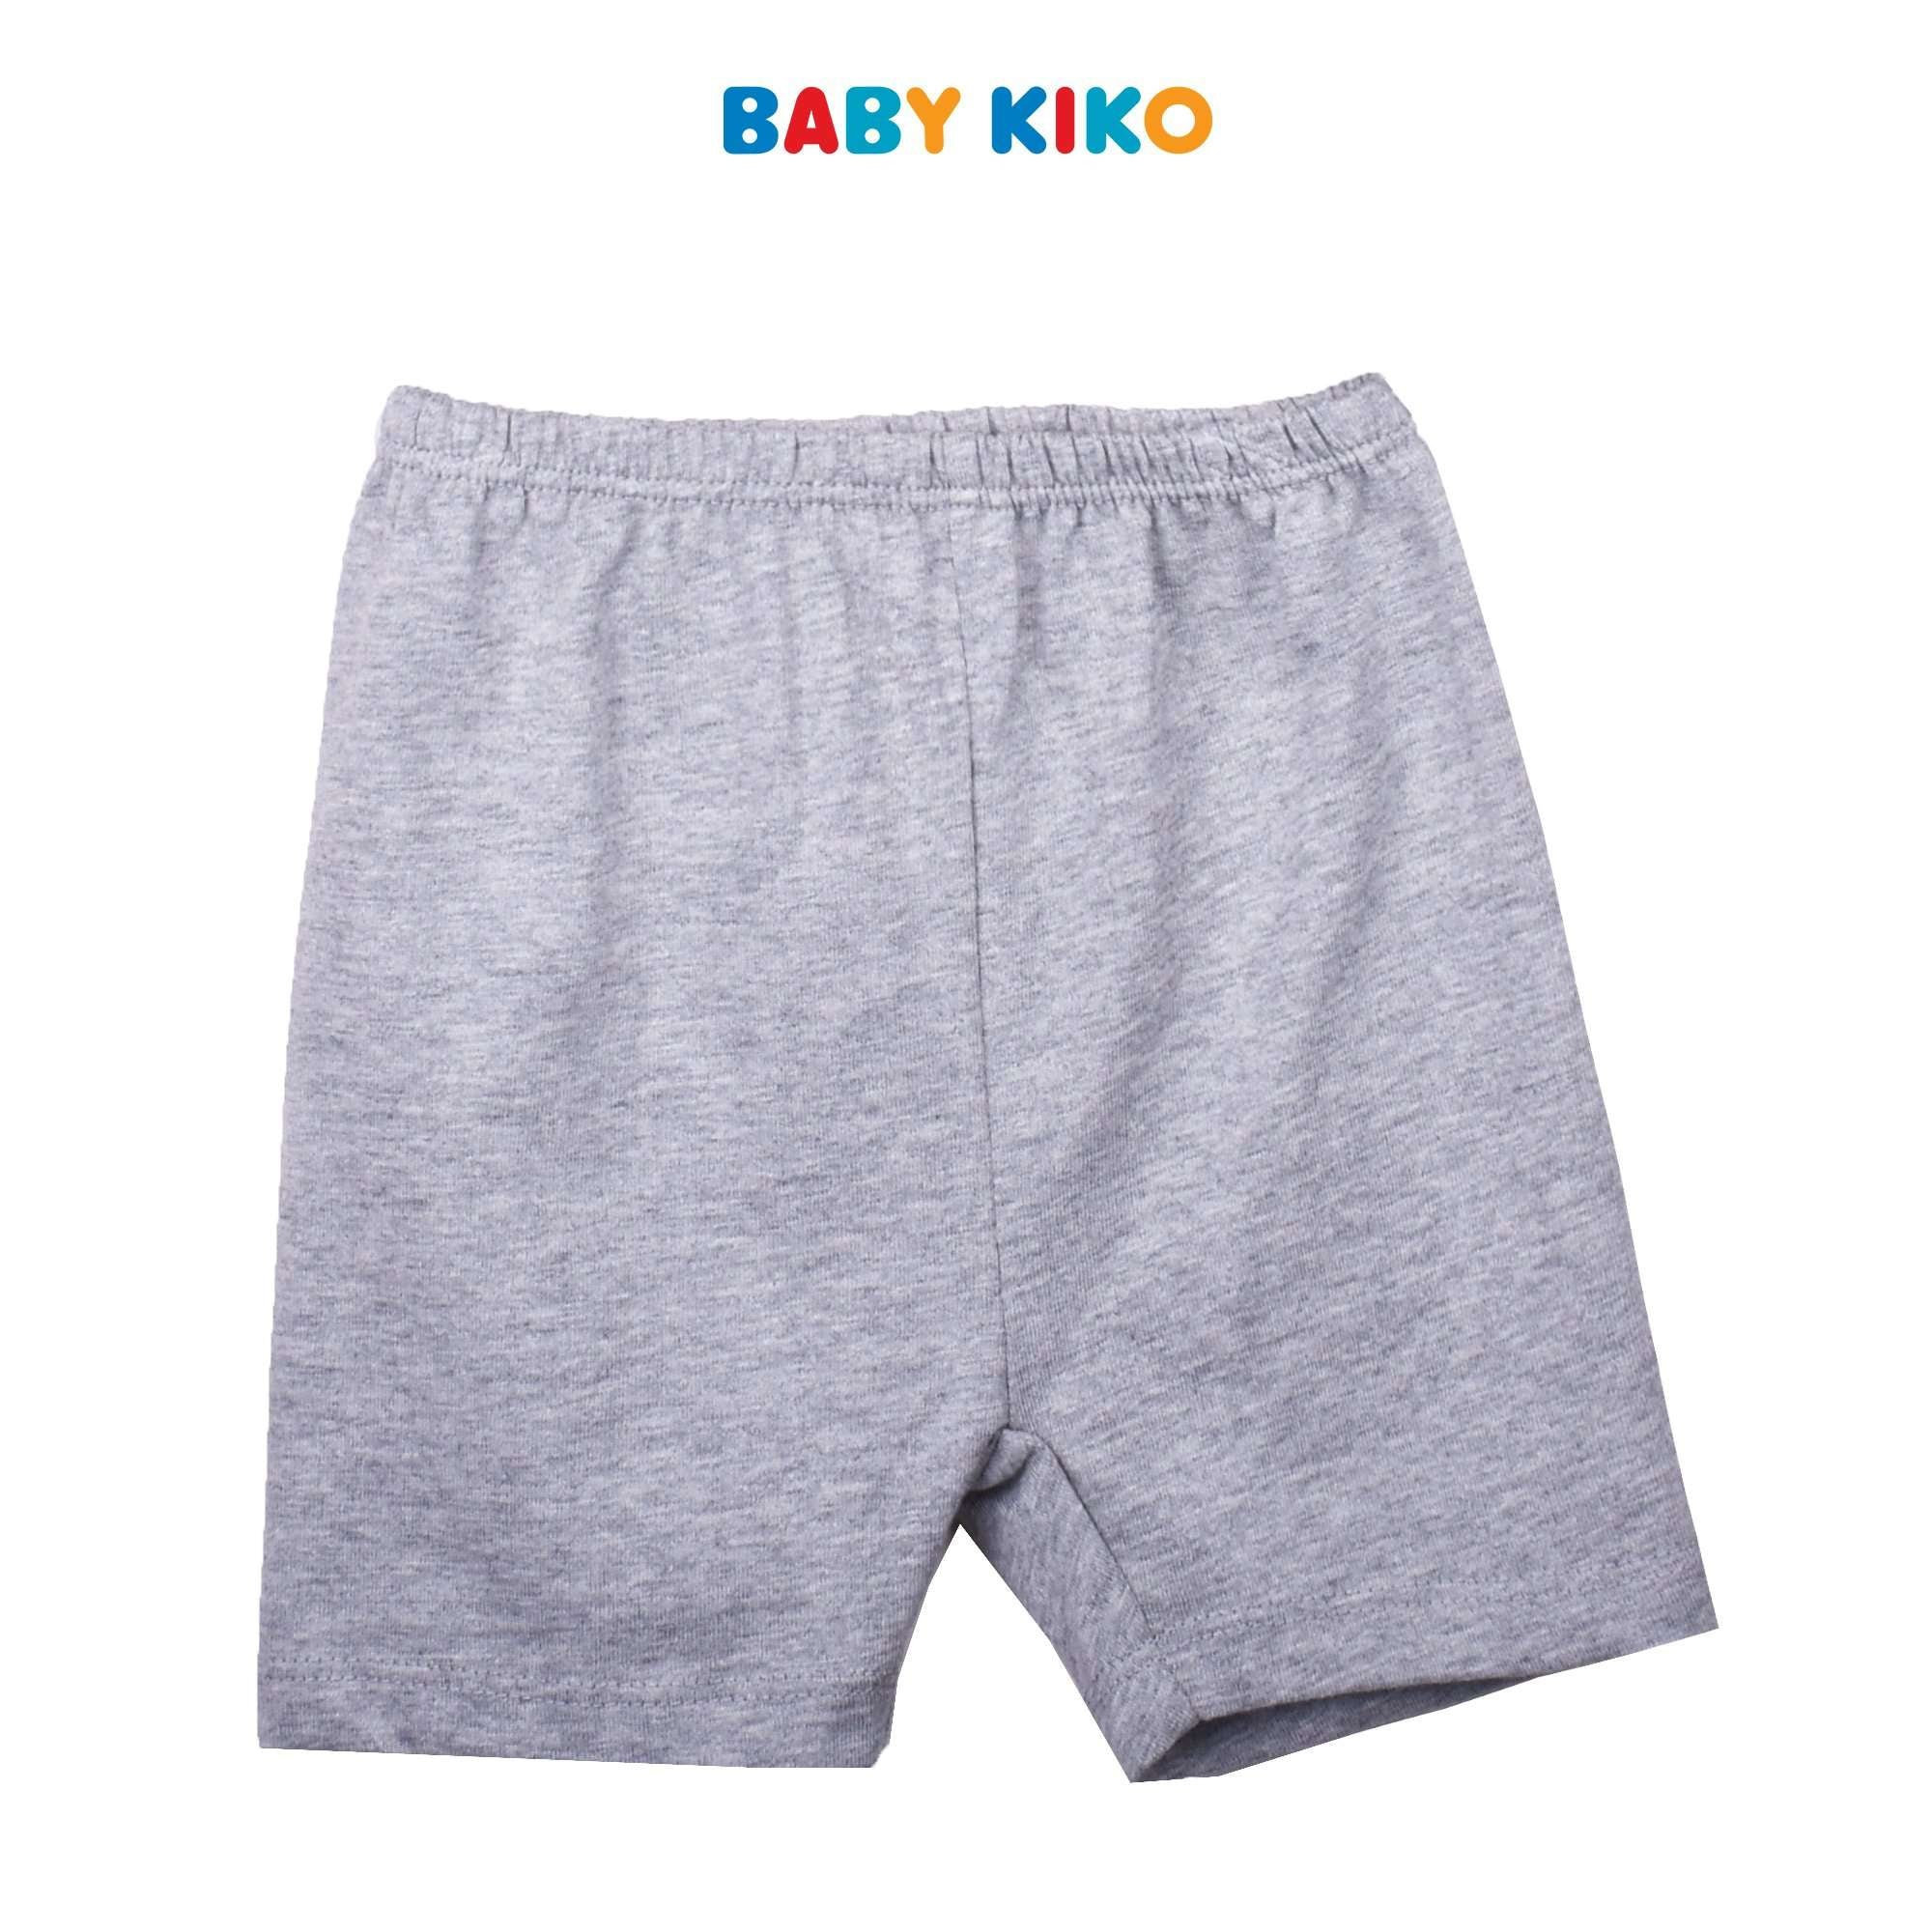 BABY KIKO BABY BOY BASIC SHORT SLEEVE BERMUDA SUIT -  NAVY B921103-4131-L9 : Buy Baby KIKO online at CMG.MY